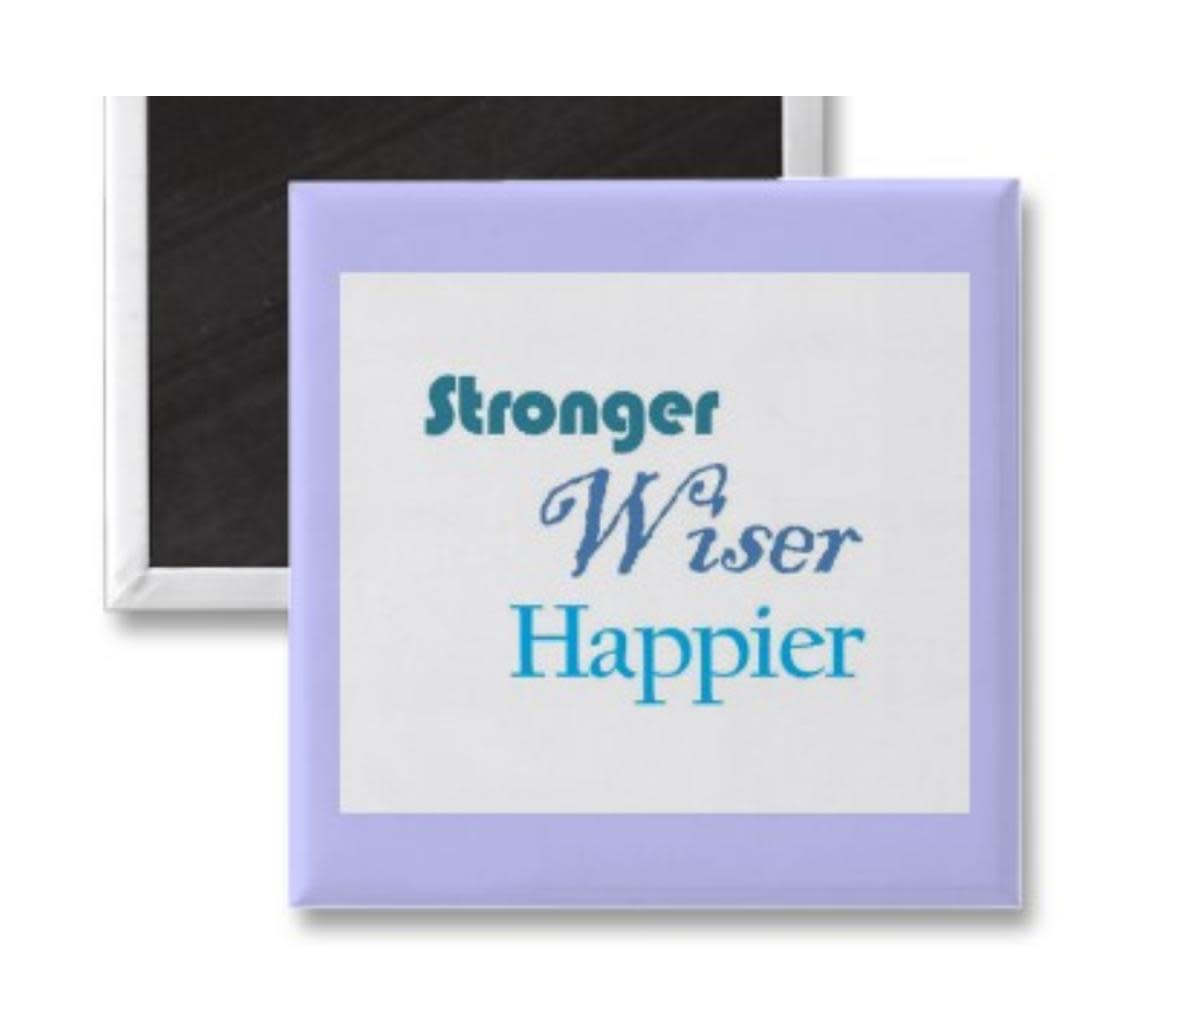 Motivational Magnet - see blue text link in paragraph to the left for further info.